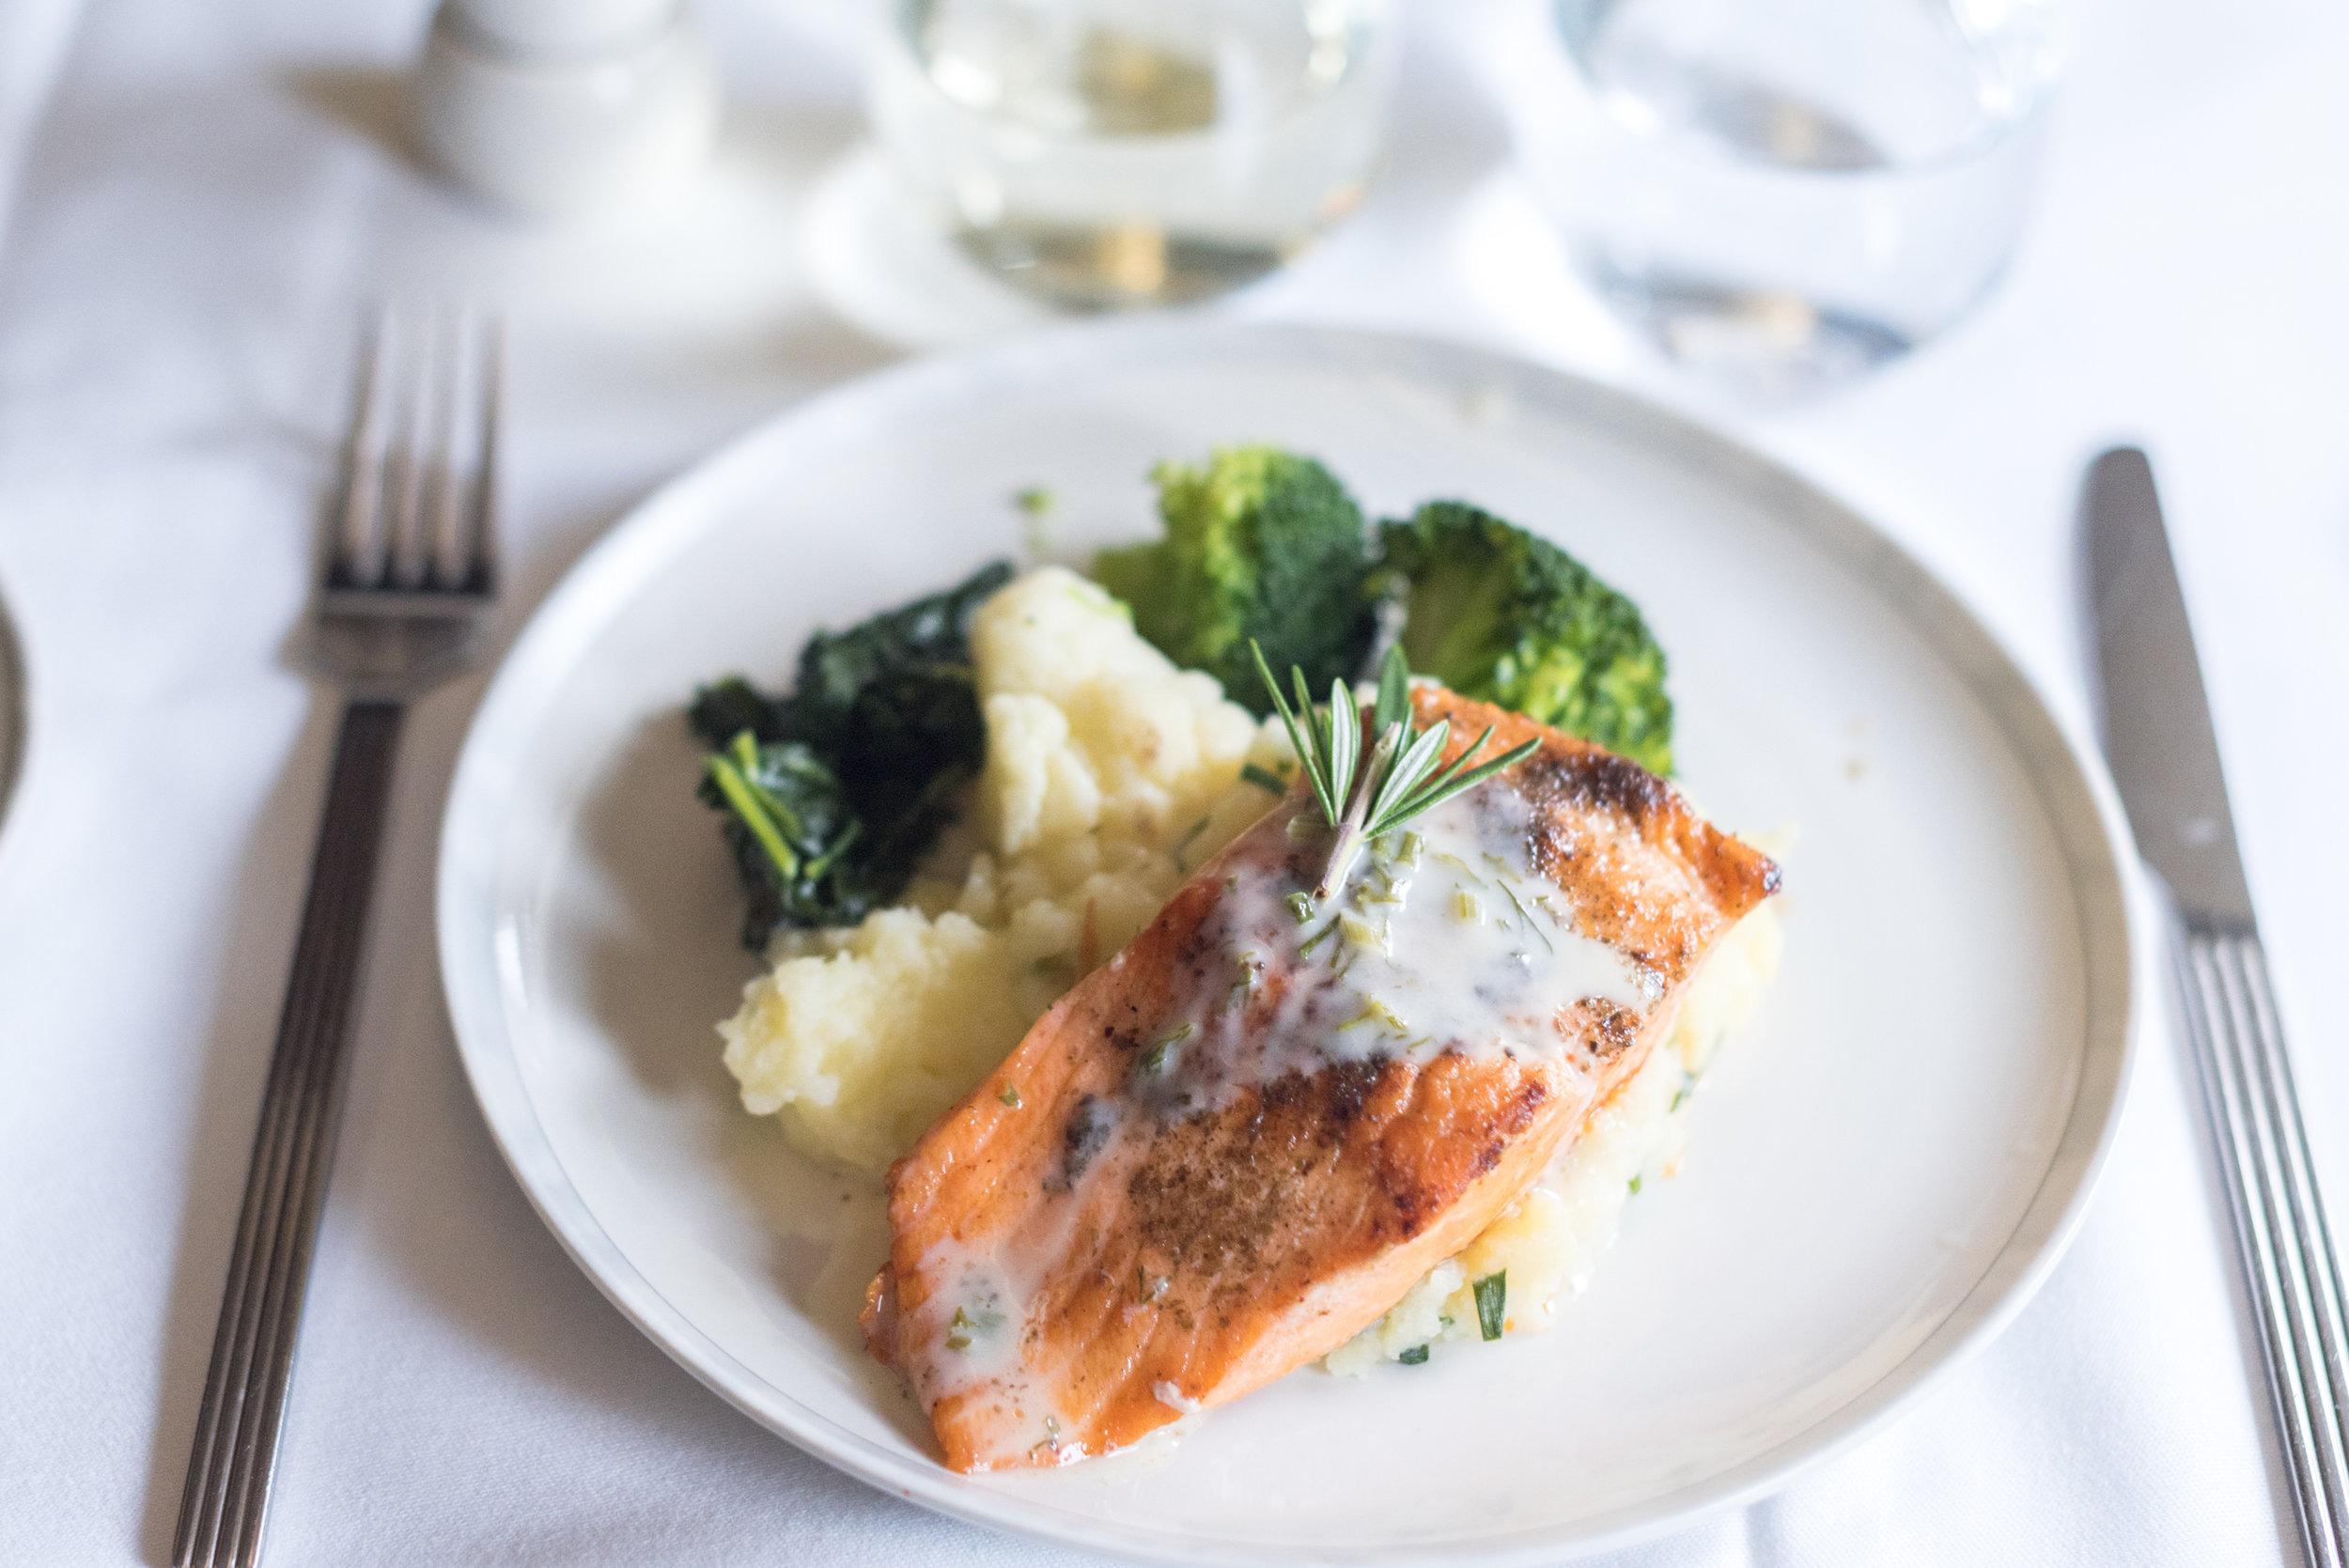 Grilled New Zealand King Salmon- Light Dinner Service  Singapore Airlines Business Class SQ286 A380-800 - AKL to SIN